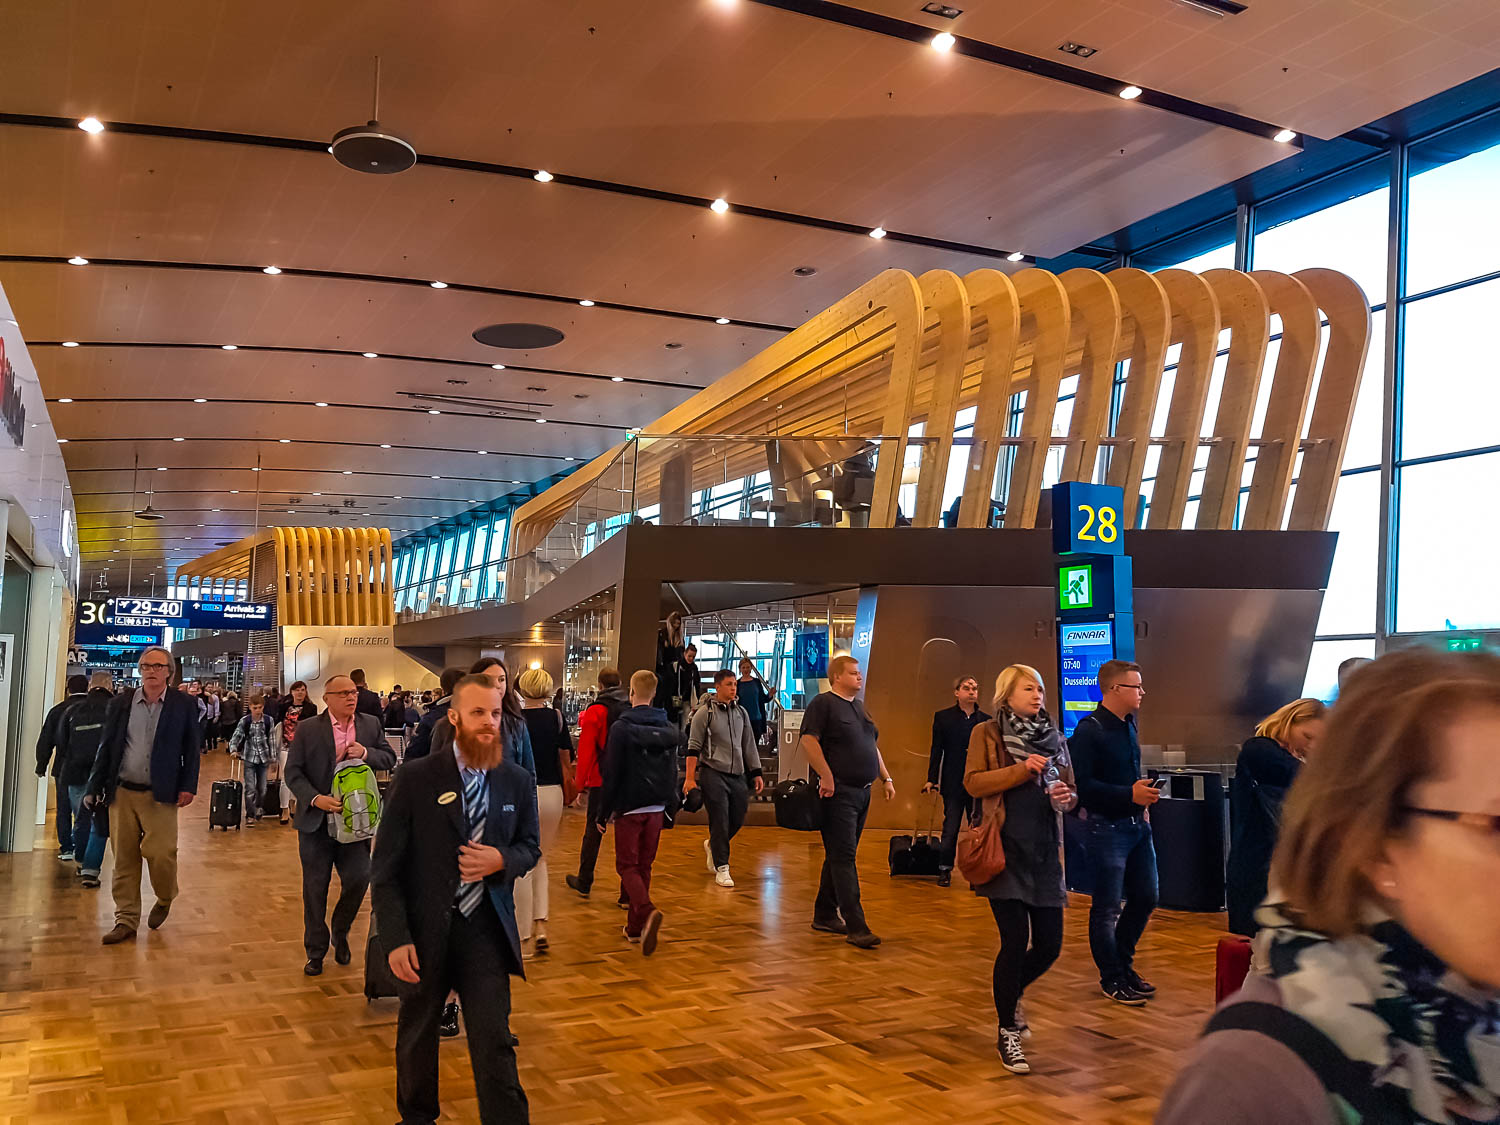 A glance of the modern Helsinki Airport, Finland